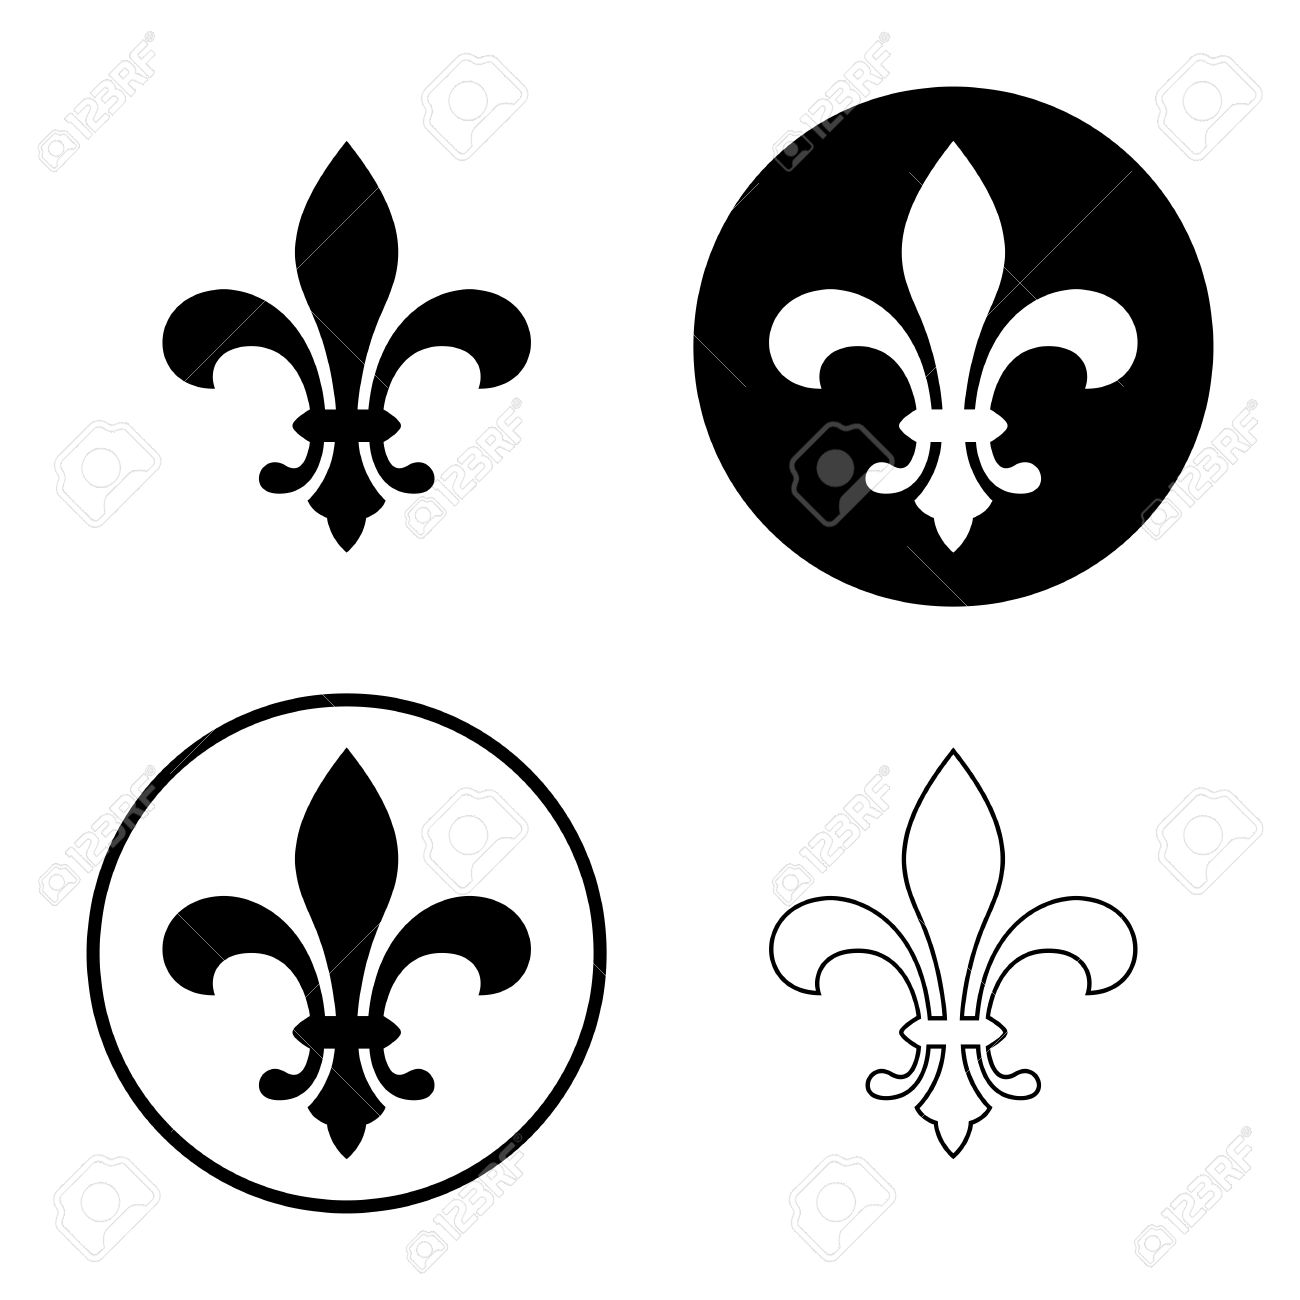 798 royal french lily symbols stock illustrations cliparts and fleur de lis or lily flower icon set royal french heraldic symbol isolated on buycottarizona Images